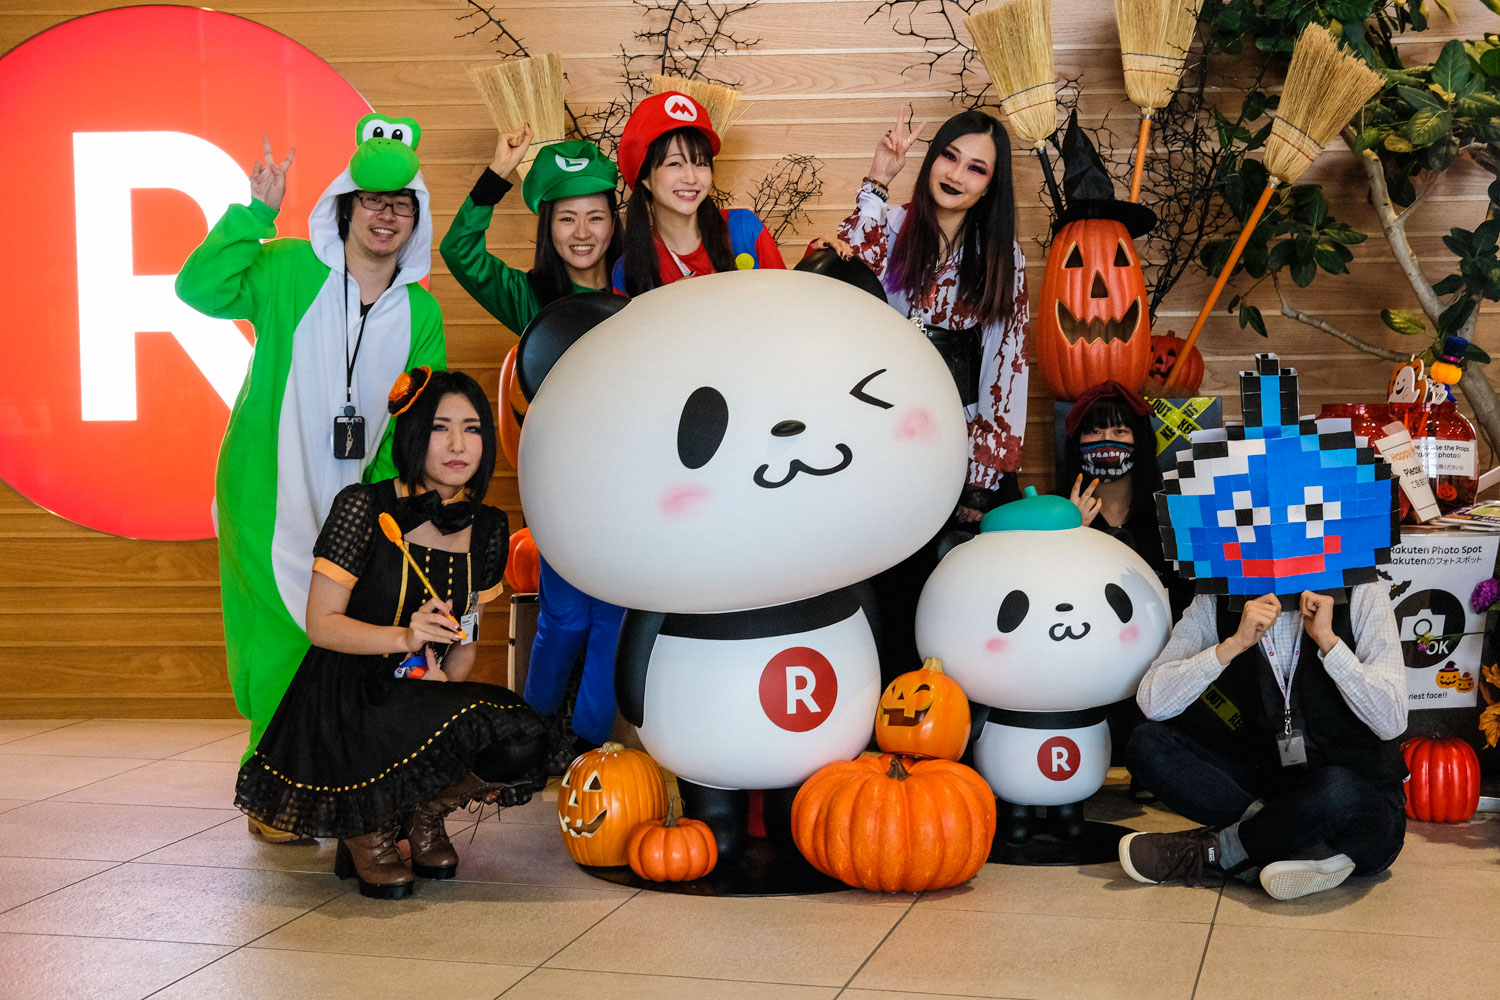 To celebrate Halloween, hundreds of employees dressed up, many in matching costumes. And, as is usually the case when it comes to Rakuten employees, they took the job extremely seriously. Above are some of the most remarkable looks from the day.